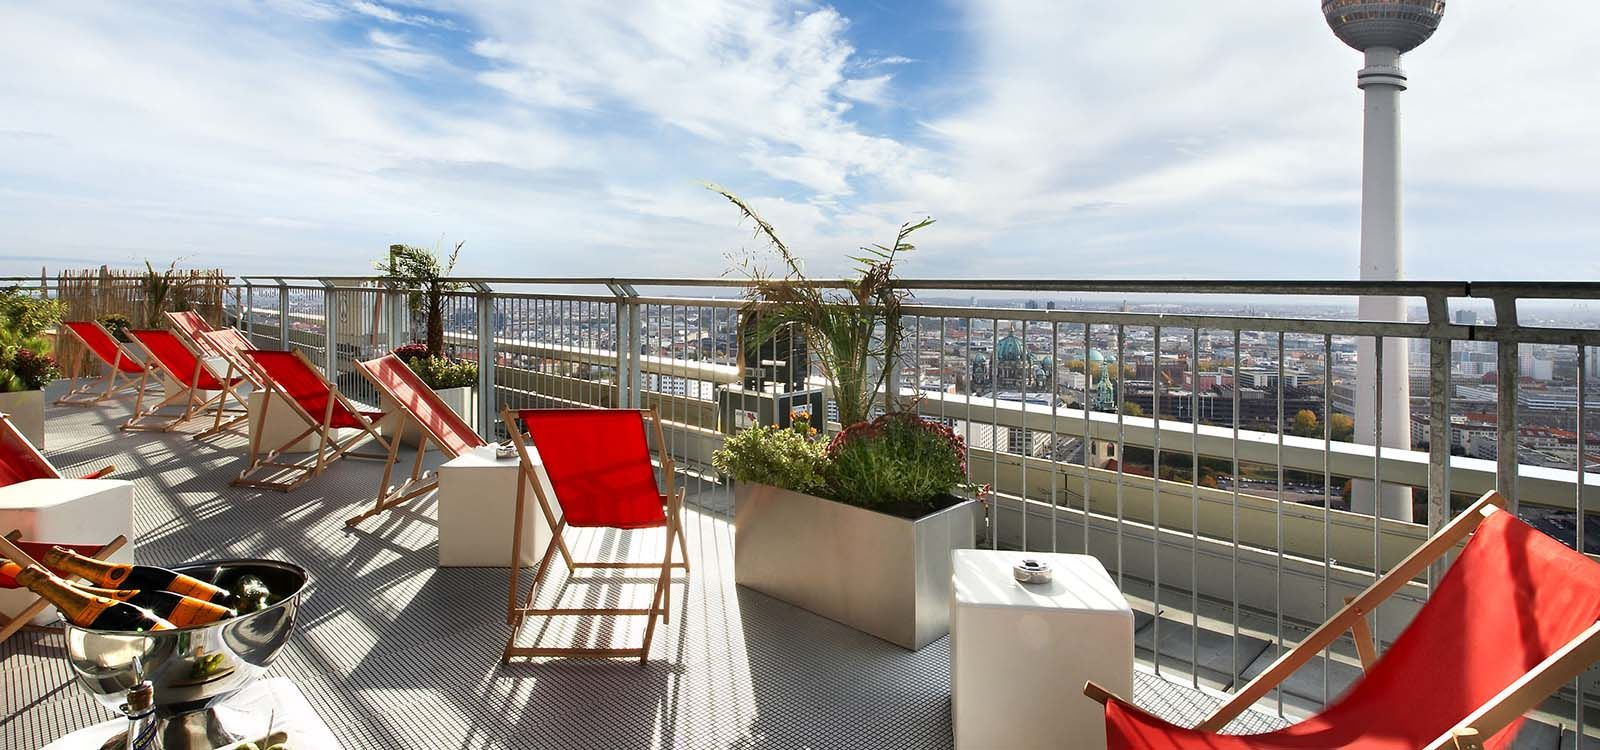 Park Inn By Radisson Berlin Panorama Terrace Open For Public At 40th Floor Breath Taking Views Inexpensive Alternative For Tv Berlin Hotel Hotel Best Hotels